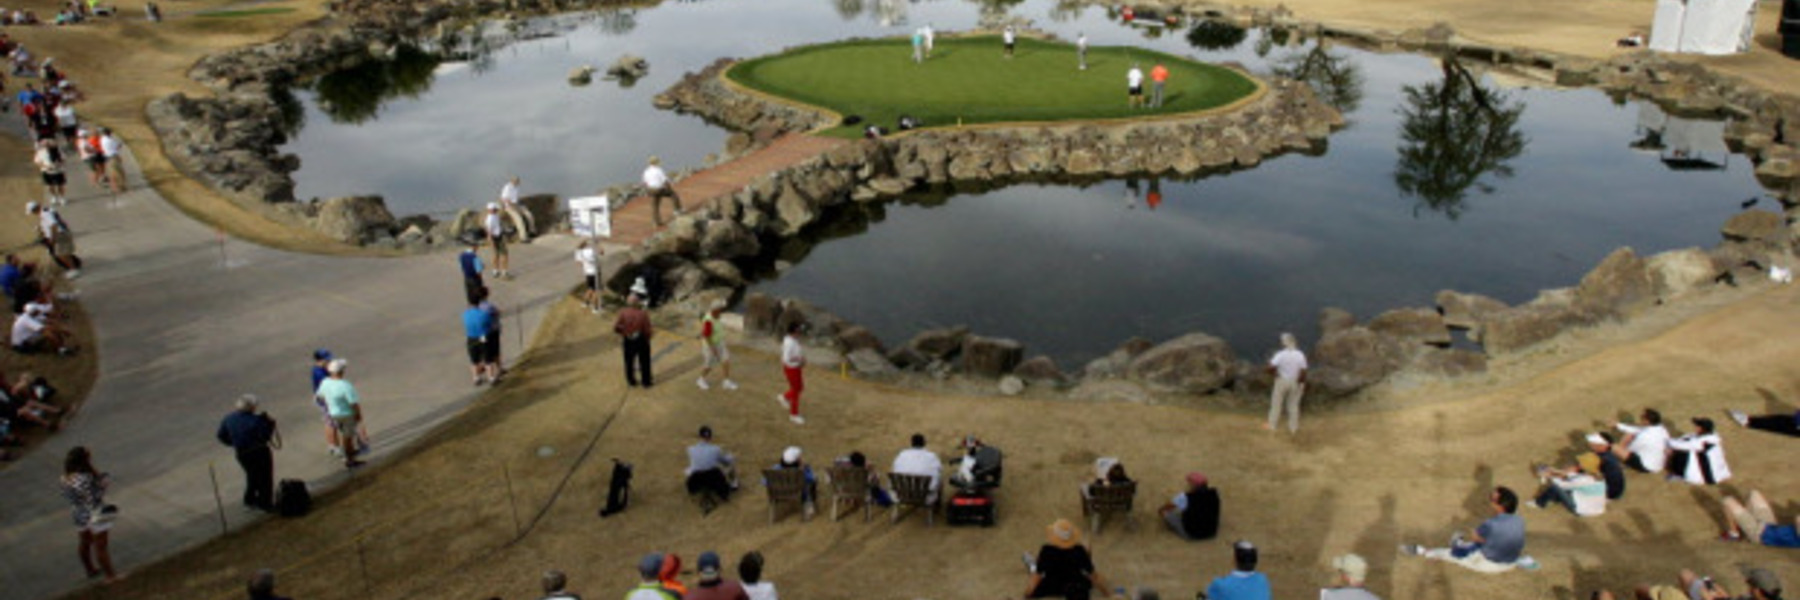 Golf Vacation Package - PGA West - TPC Stadium Course